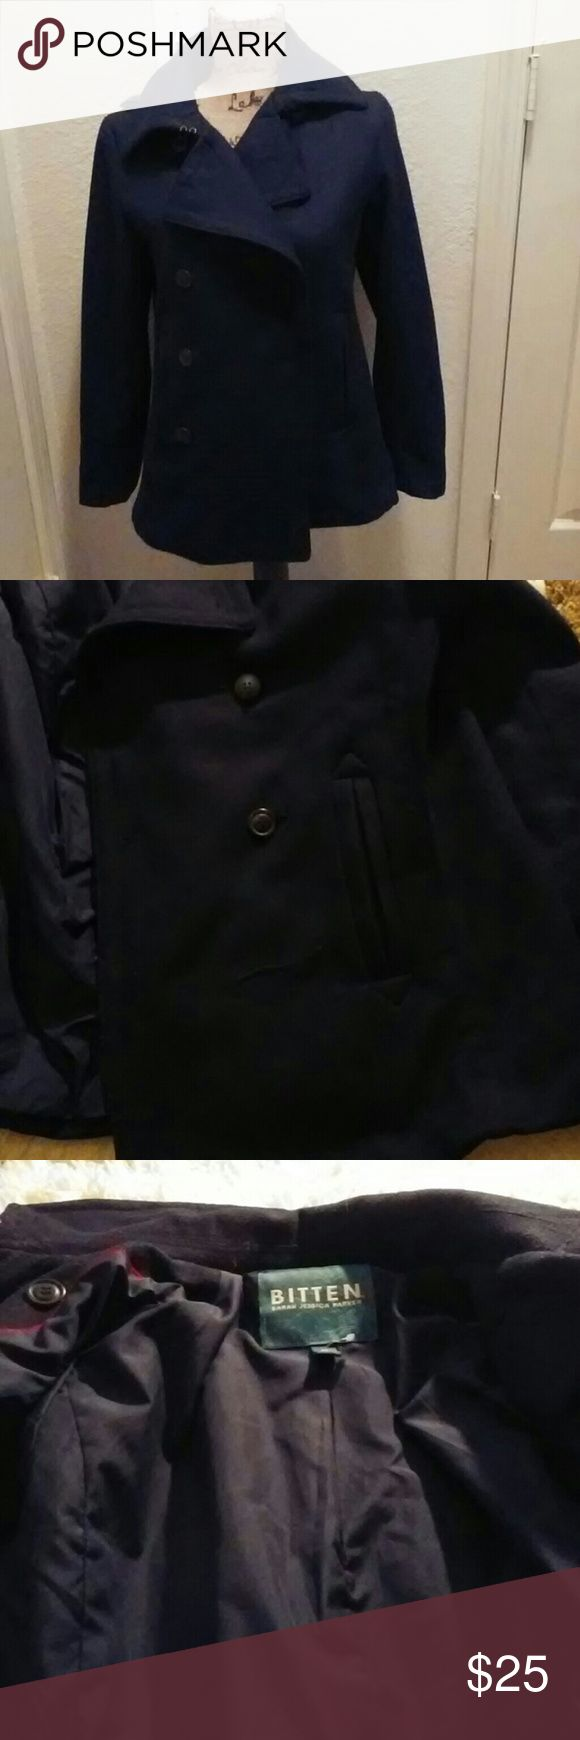 Bitten Sarah Jessica Parker Navy Peacoat. Sz M This is a great coat in Pre-Loved condition. The coat has two loose buttons and one missing BUTTON. This is a simple fix. There are additional buttons that are on the interior of the coat to replace the missing button. Other than the buttons there are no signs of wear. Retails for $75. This is a great coat at an amazing price. BITTEN Sarah Jessica Parker Jackets & Coats Pea Coats